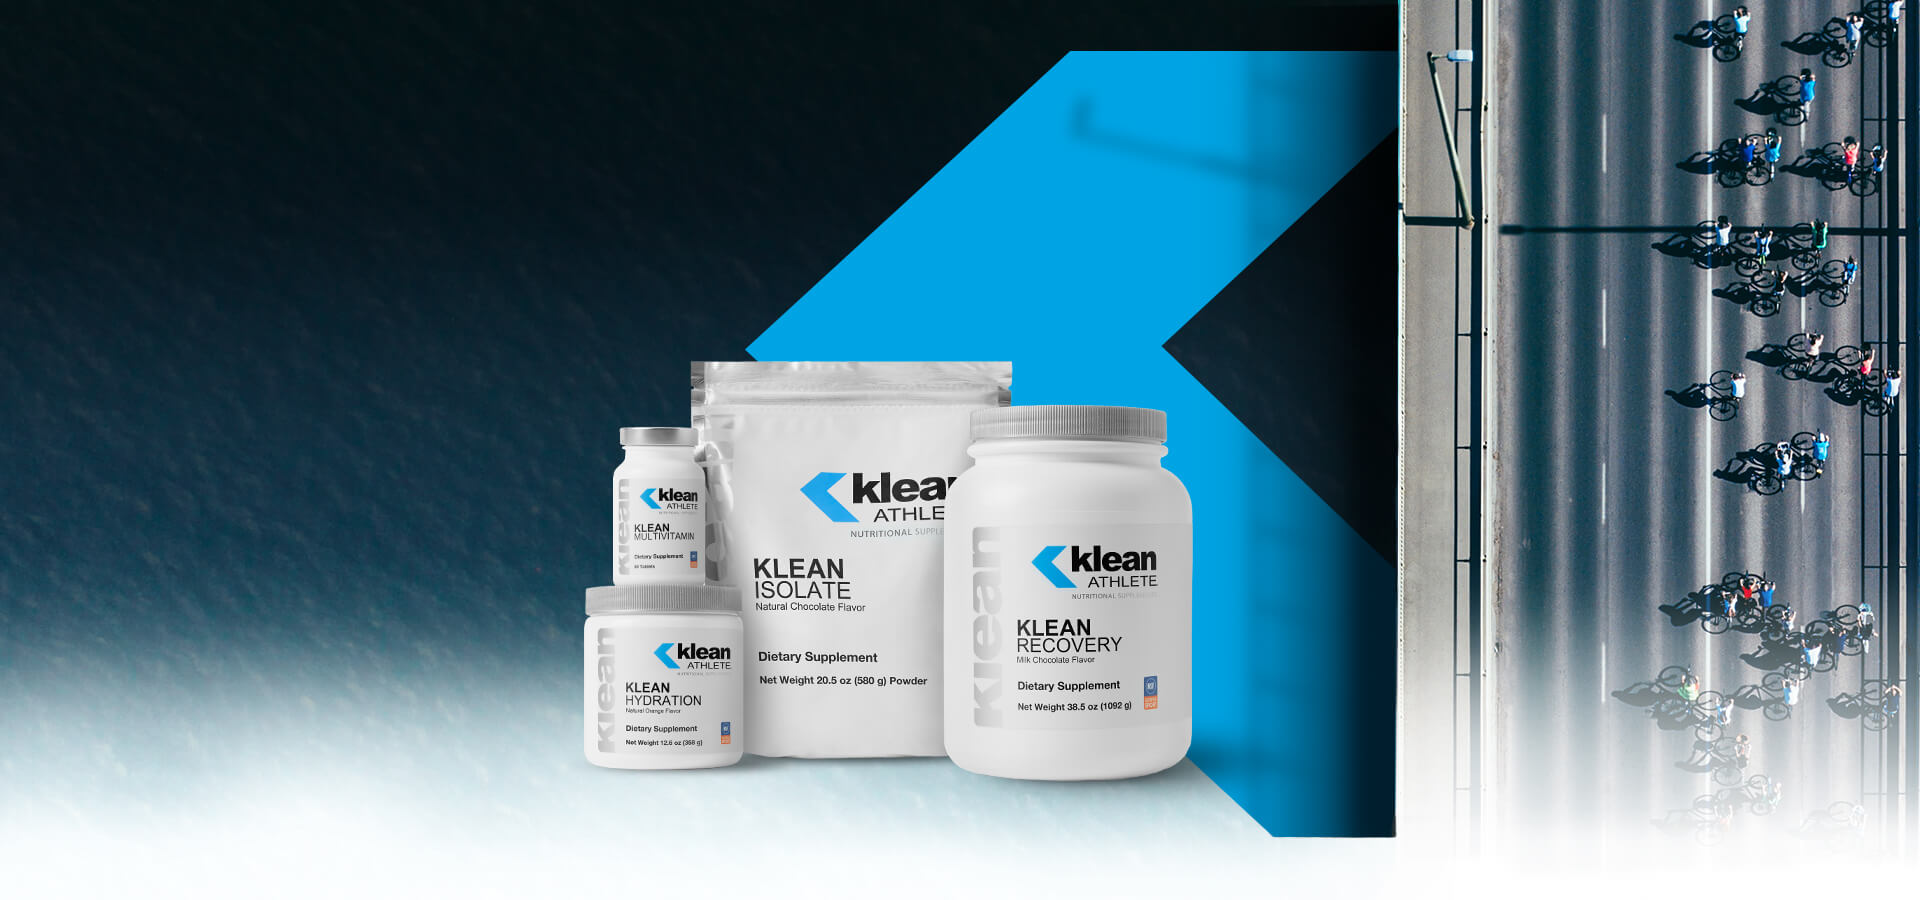 Klean Athlete- Fuel your foundation and perform at your peak